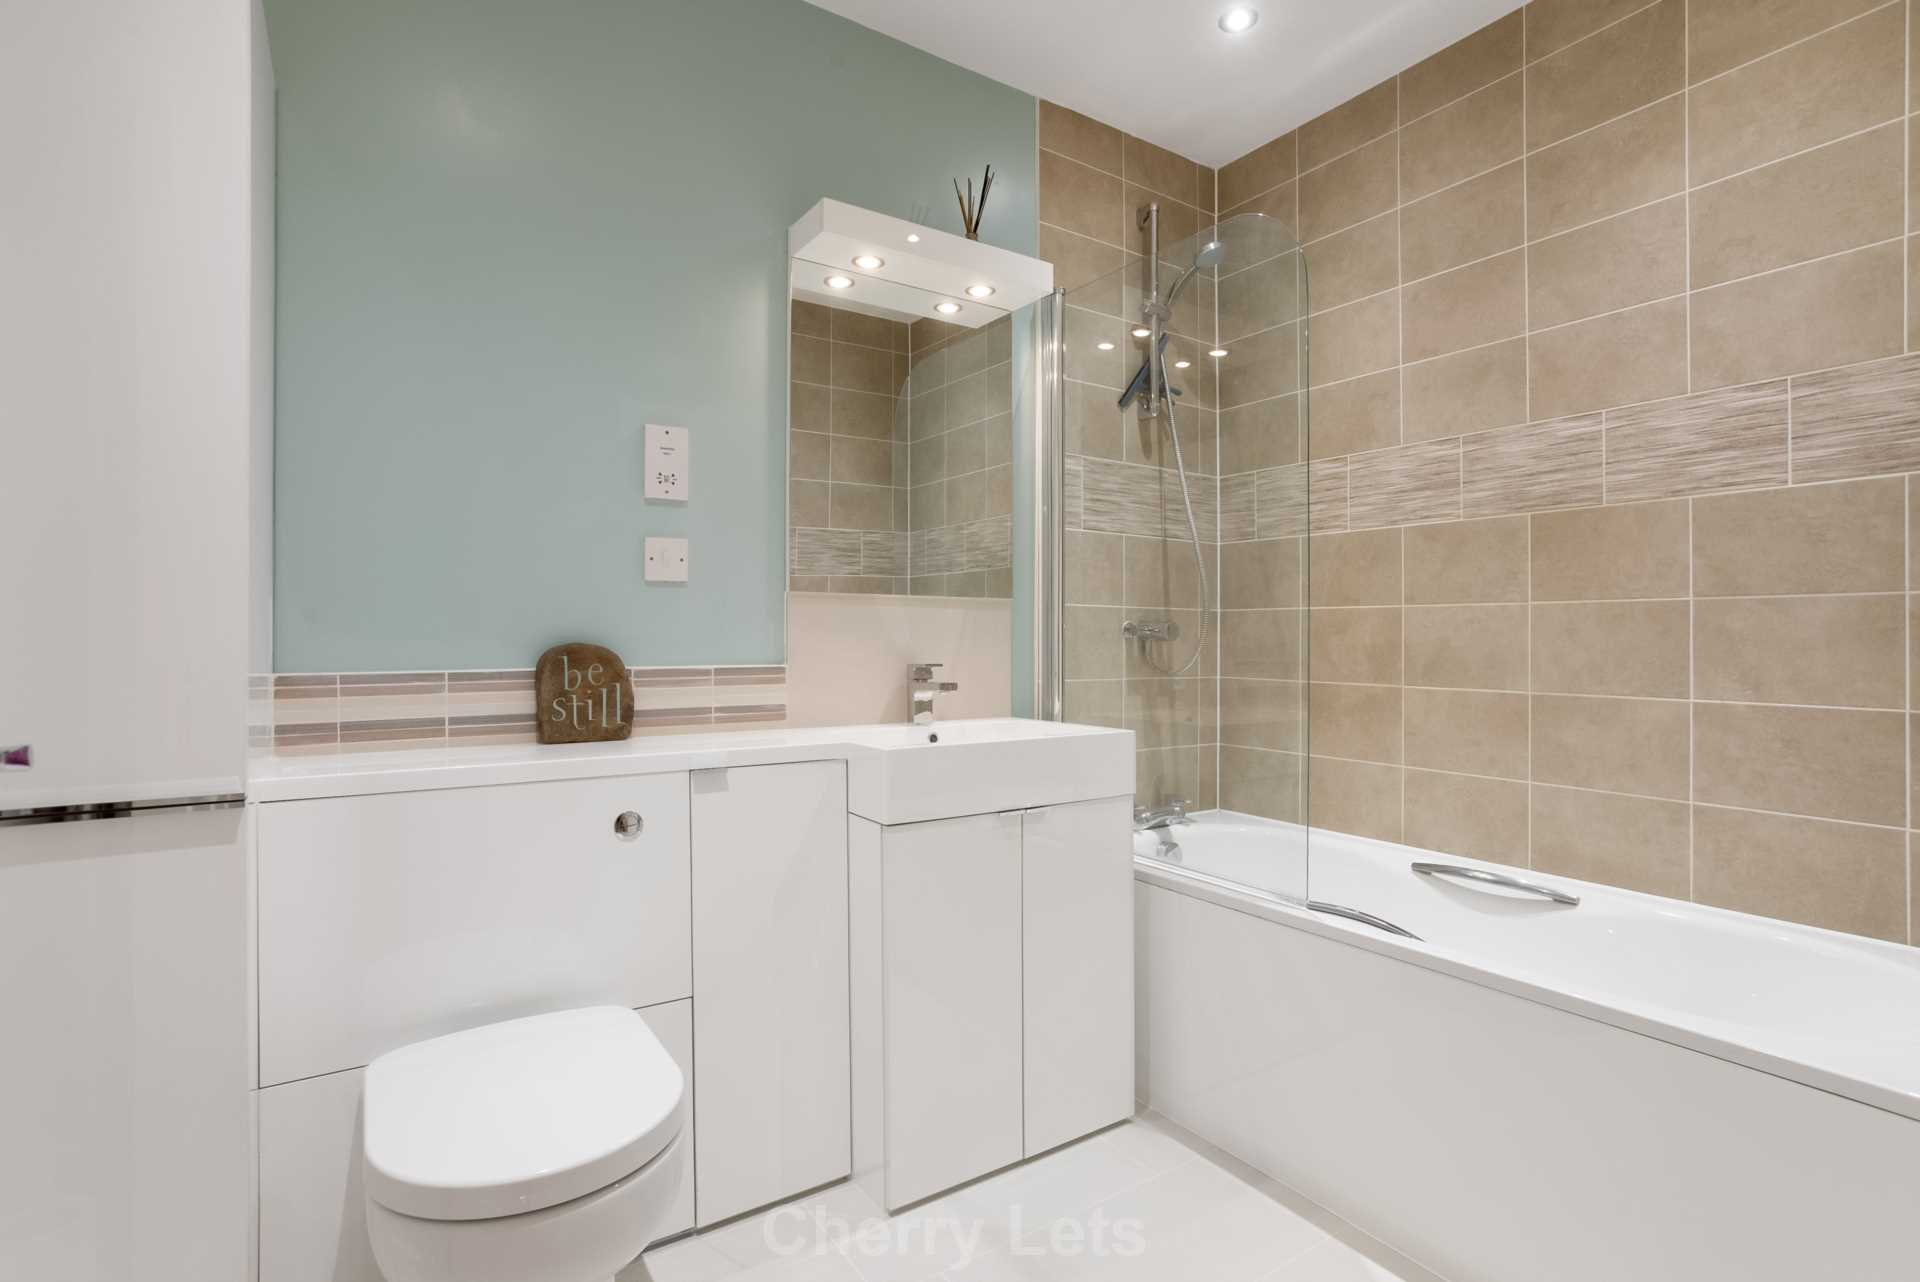 2 bed apartment to rent in Astrop Grange, Kings Sutton, OX17 6